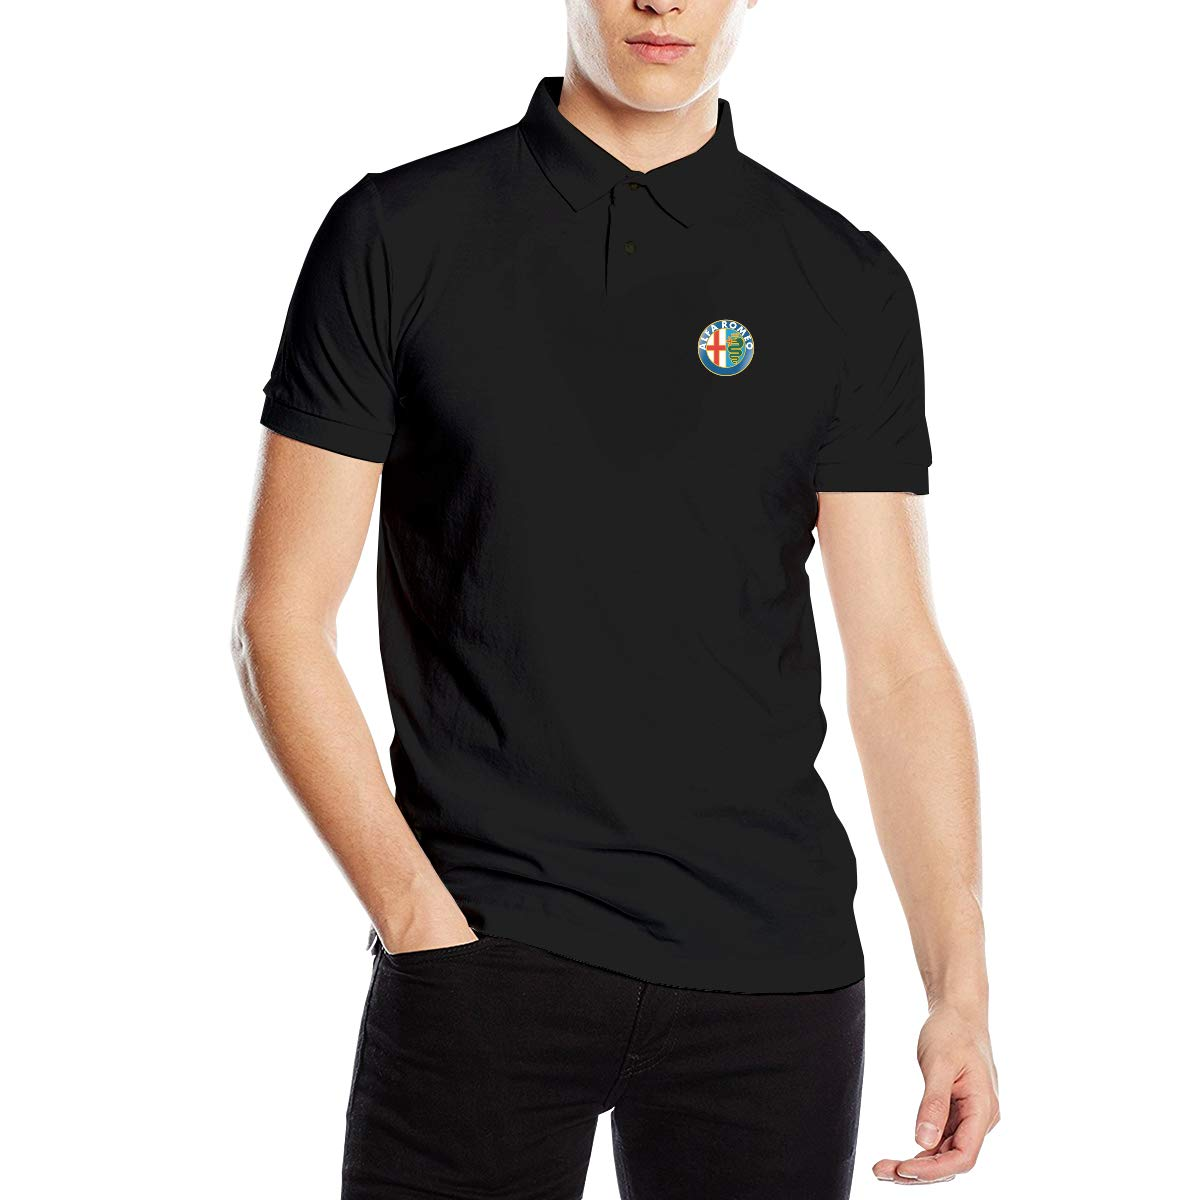 UESEU Personalized ALFA Alfa Romeo Logo Short Sleeve Cotton Casual Polo Shirt T-Shirt for Men